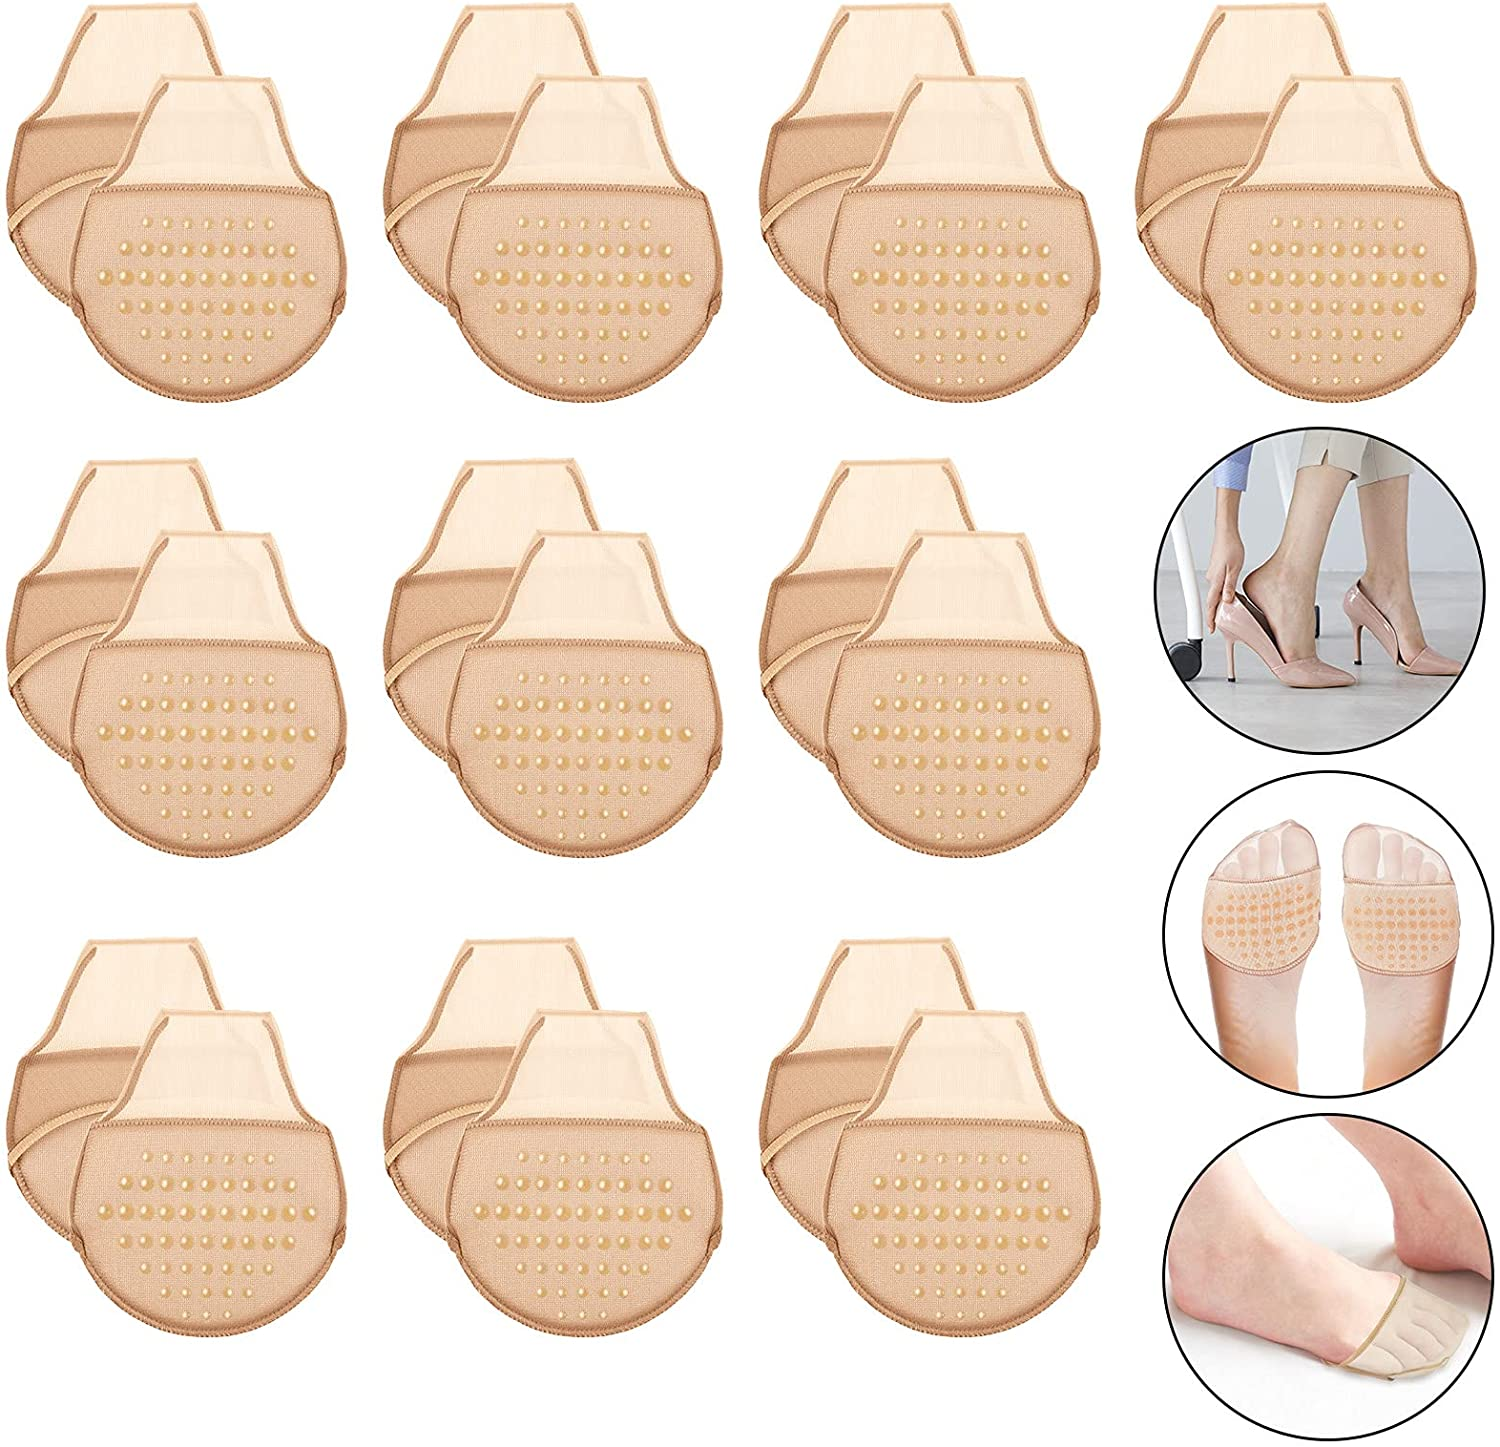 10 Same day shipping Pairs Women's Toe Cover with Liner Topper N Socks Deluxe Padding